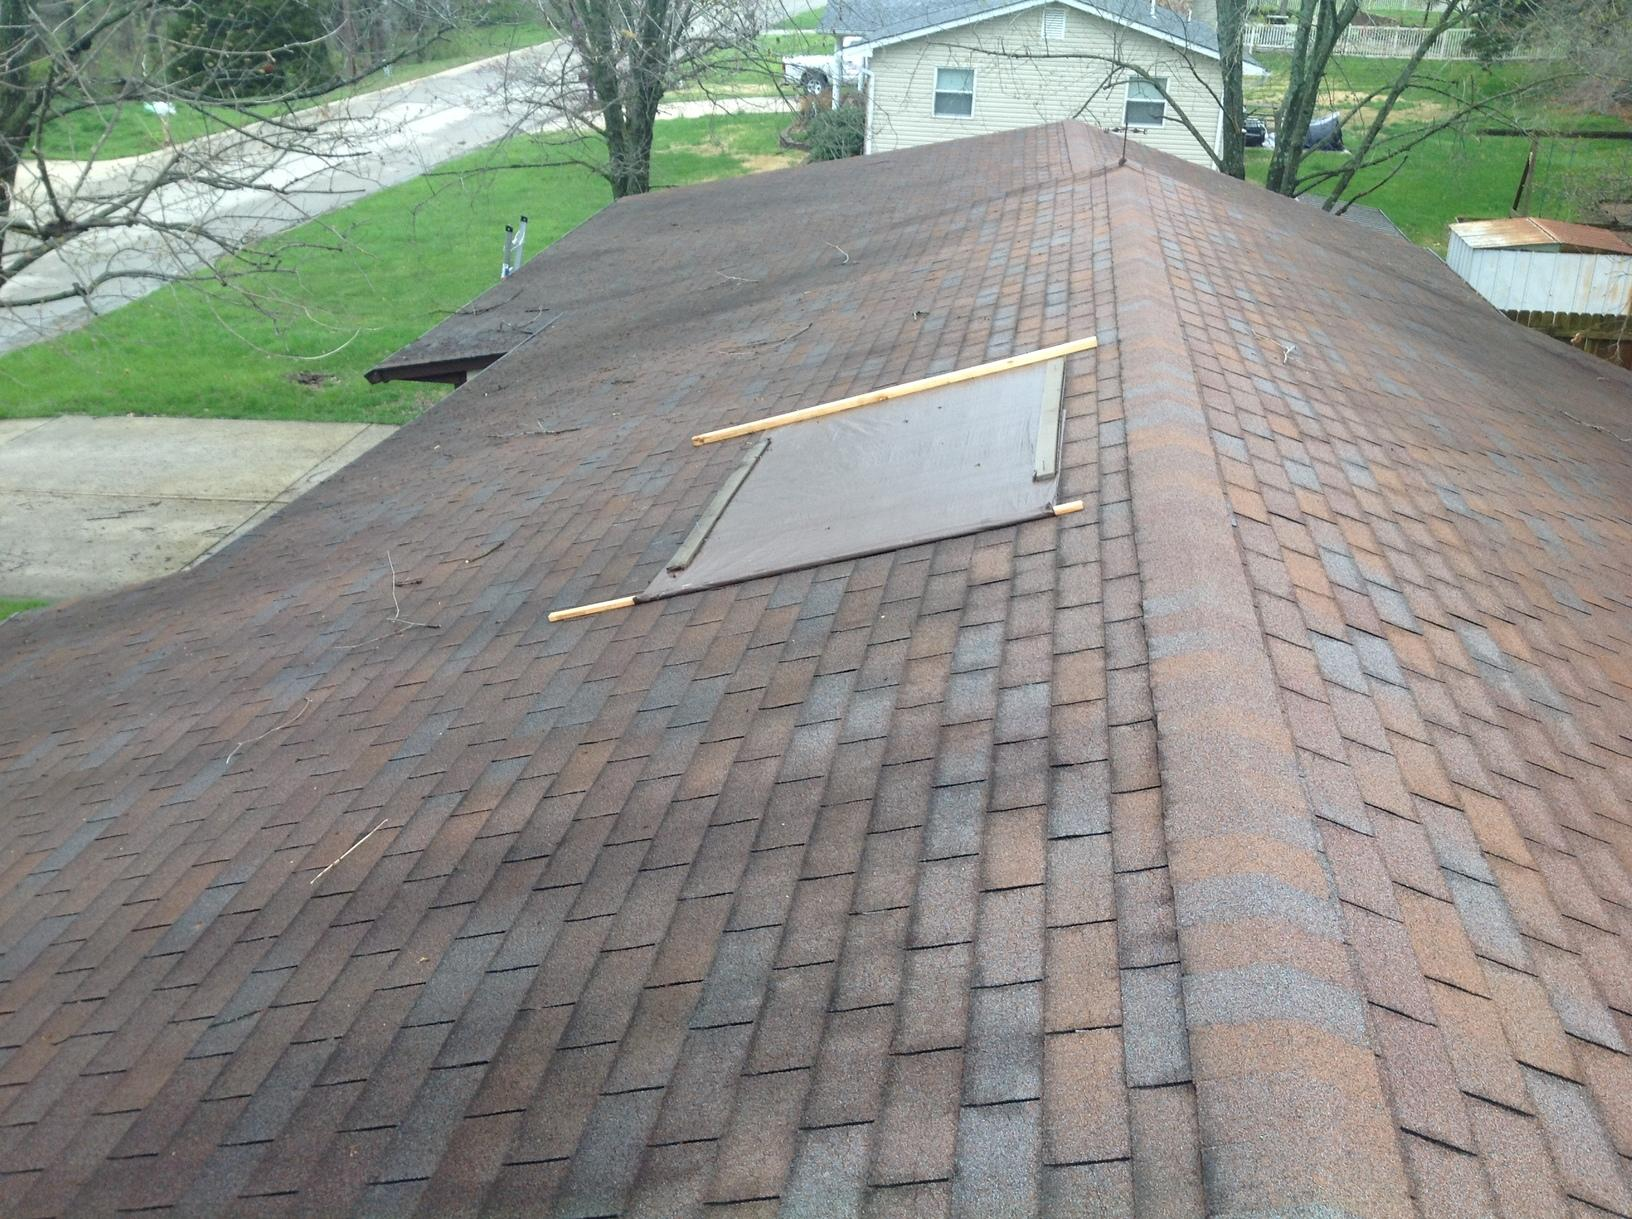 New Owens Corning Roof Replacement in Warrenton, MO - Before Photo